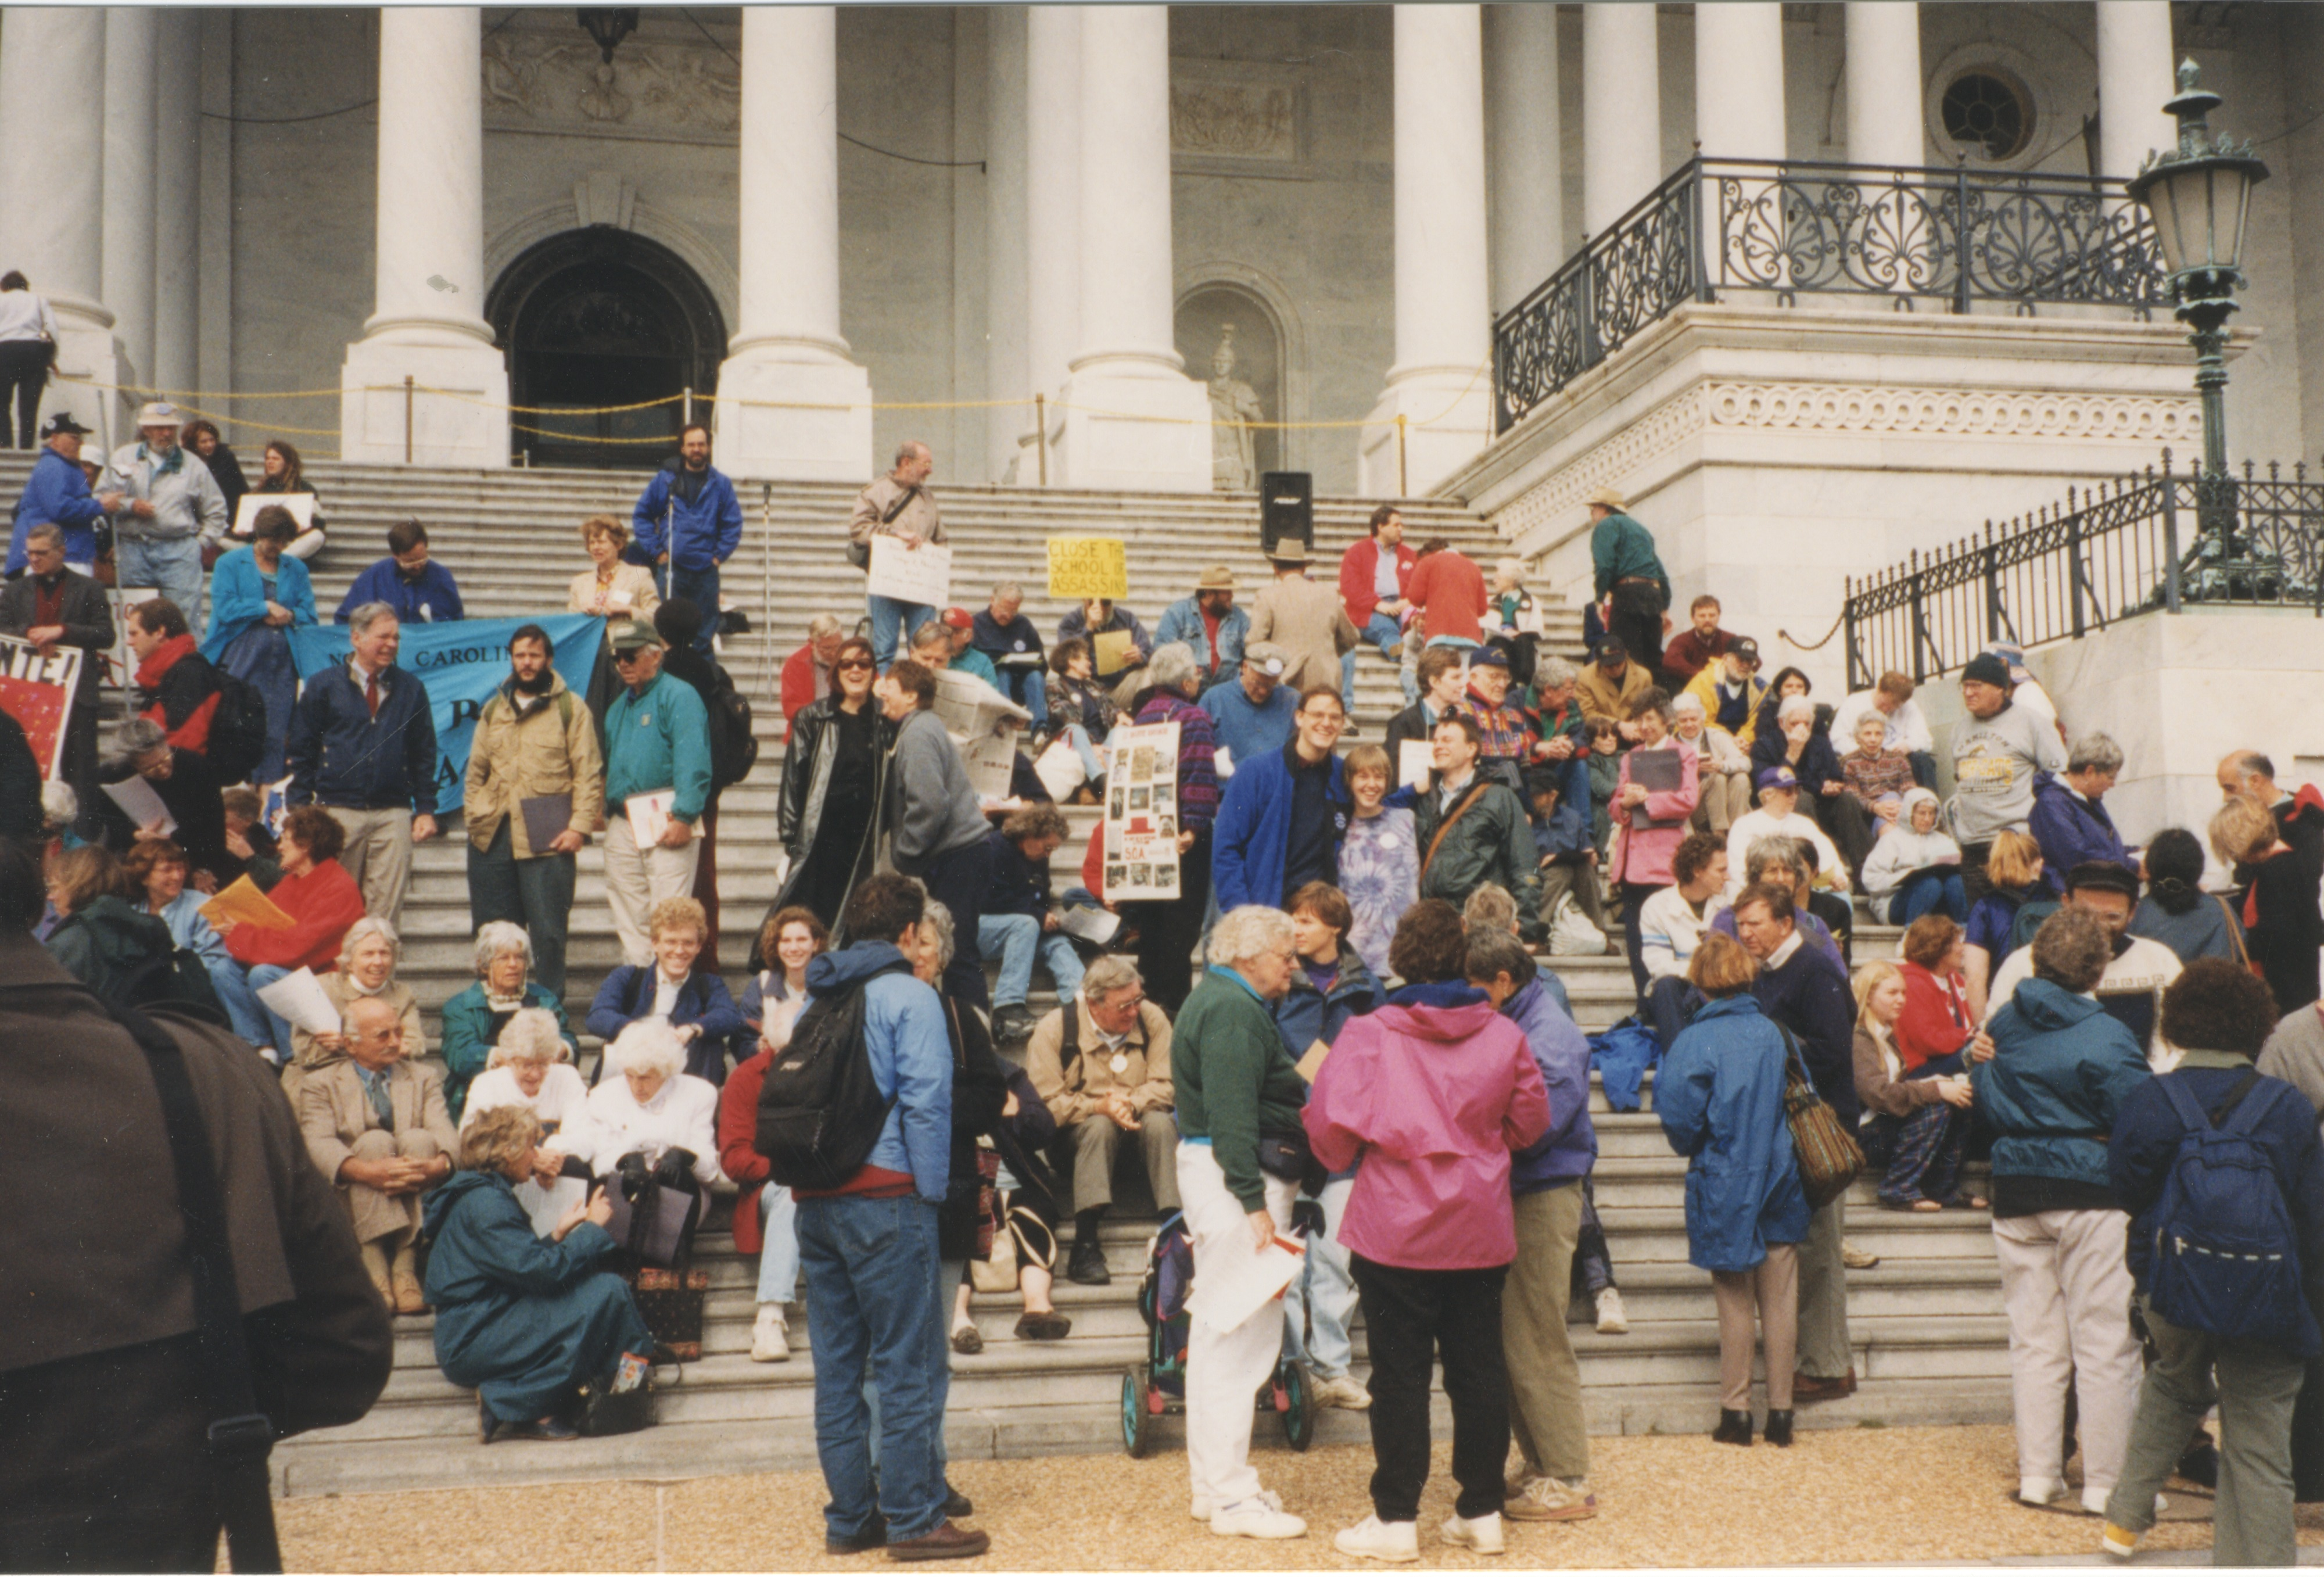 Interfaith Council for Peace and Justice: School of Americas Protest in Washington, D.C., 1998 image